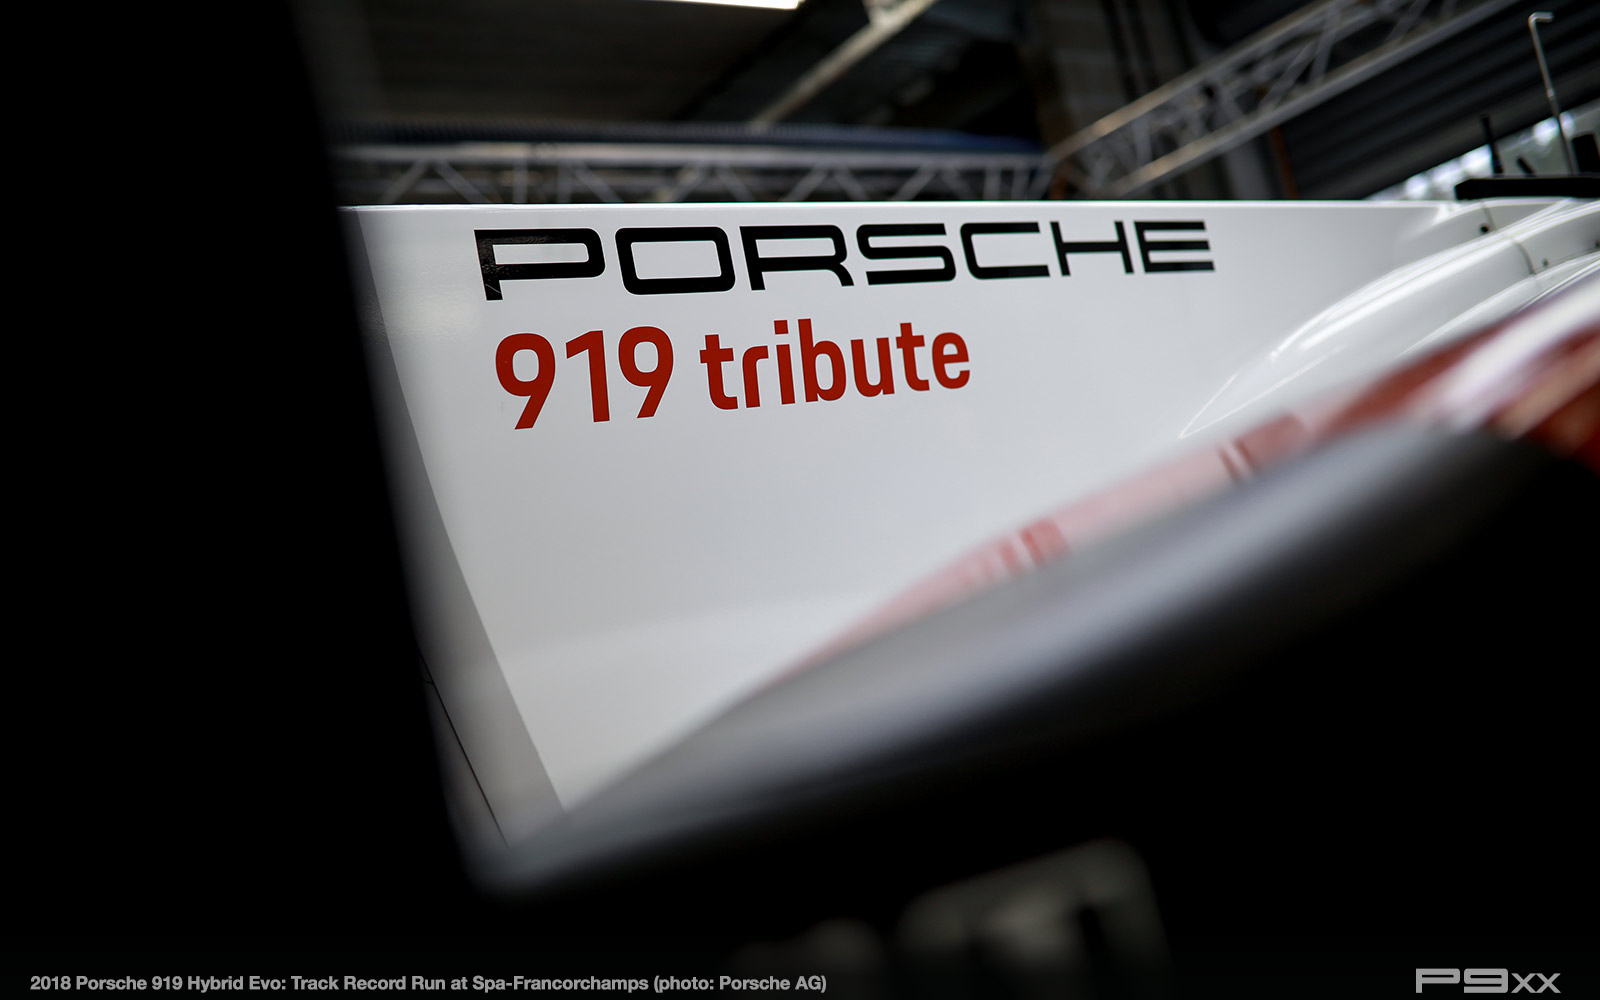 2018-porsche-919-evo-tribute-spa-francorchamps-502